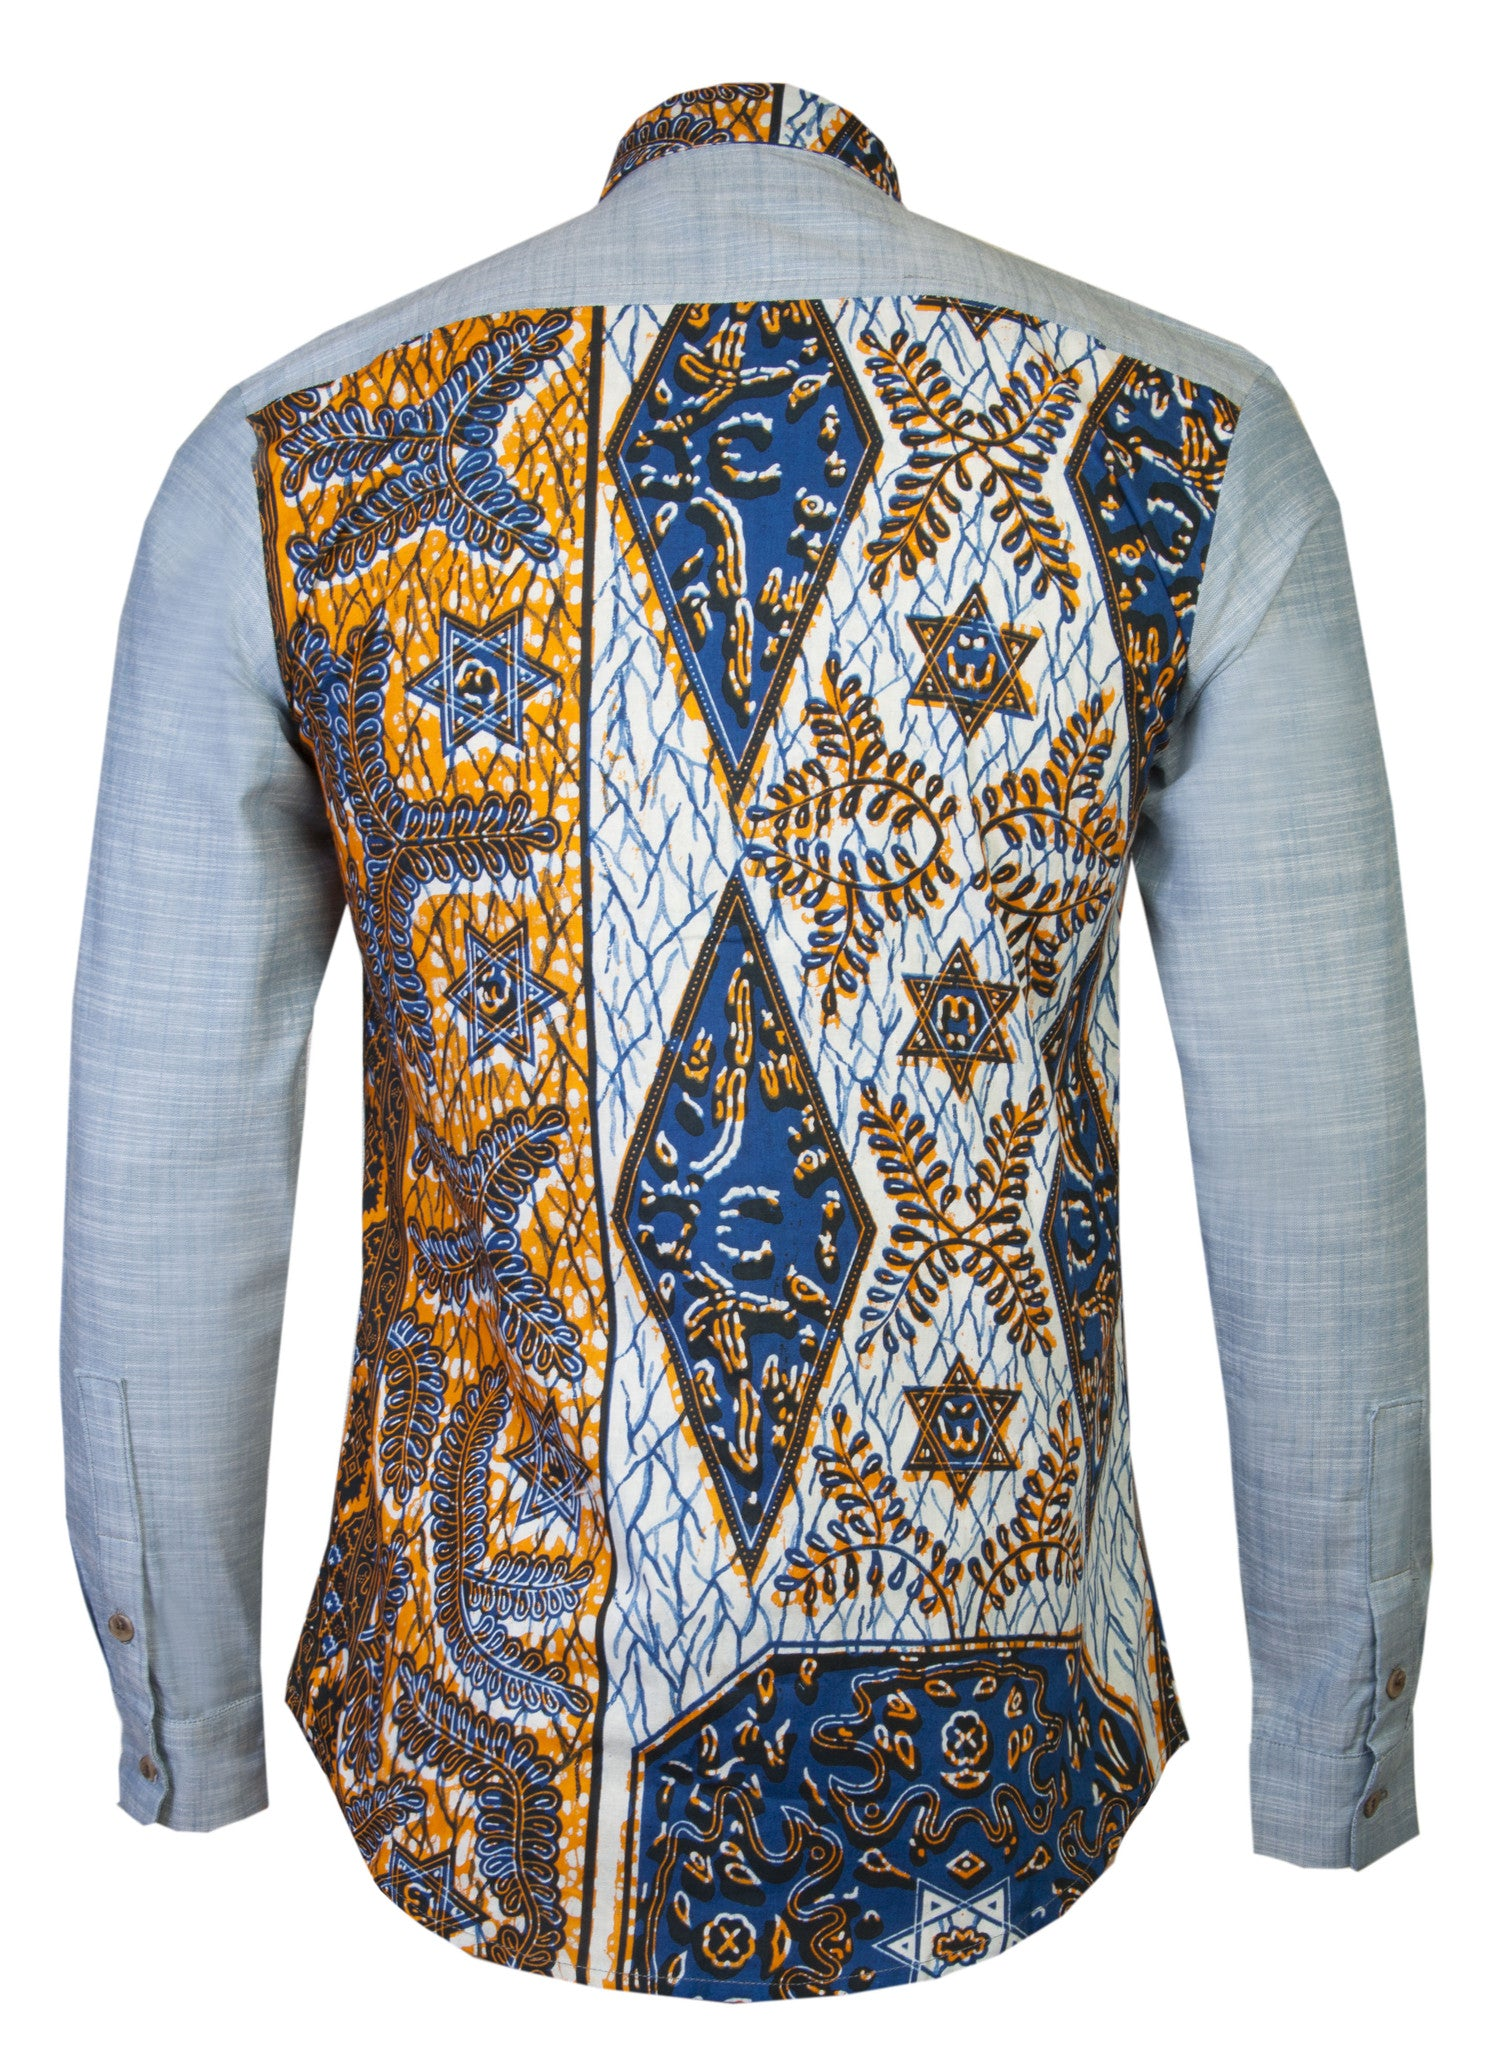 Men's Denim African print shirt 'Bethlehem' - OHEMA OHENE AFRICAN INSPIRED FASHION  - 2